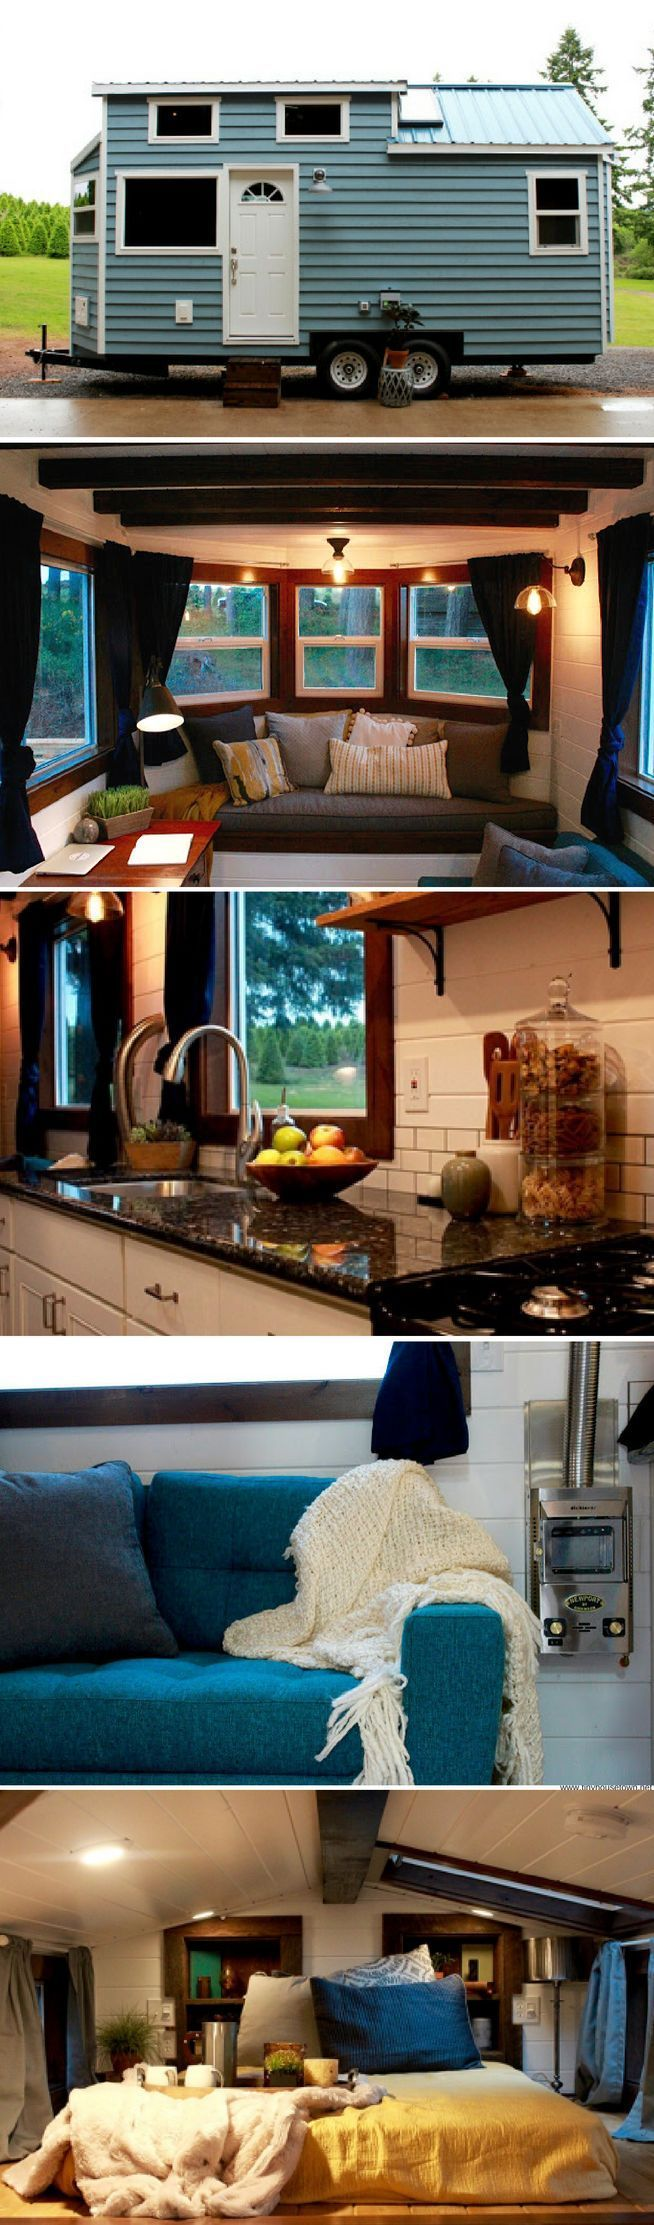 The Sapphire tiny house from Tiny Heirloom | wohnideen | Pinterest ...